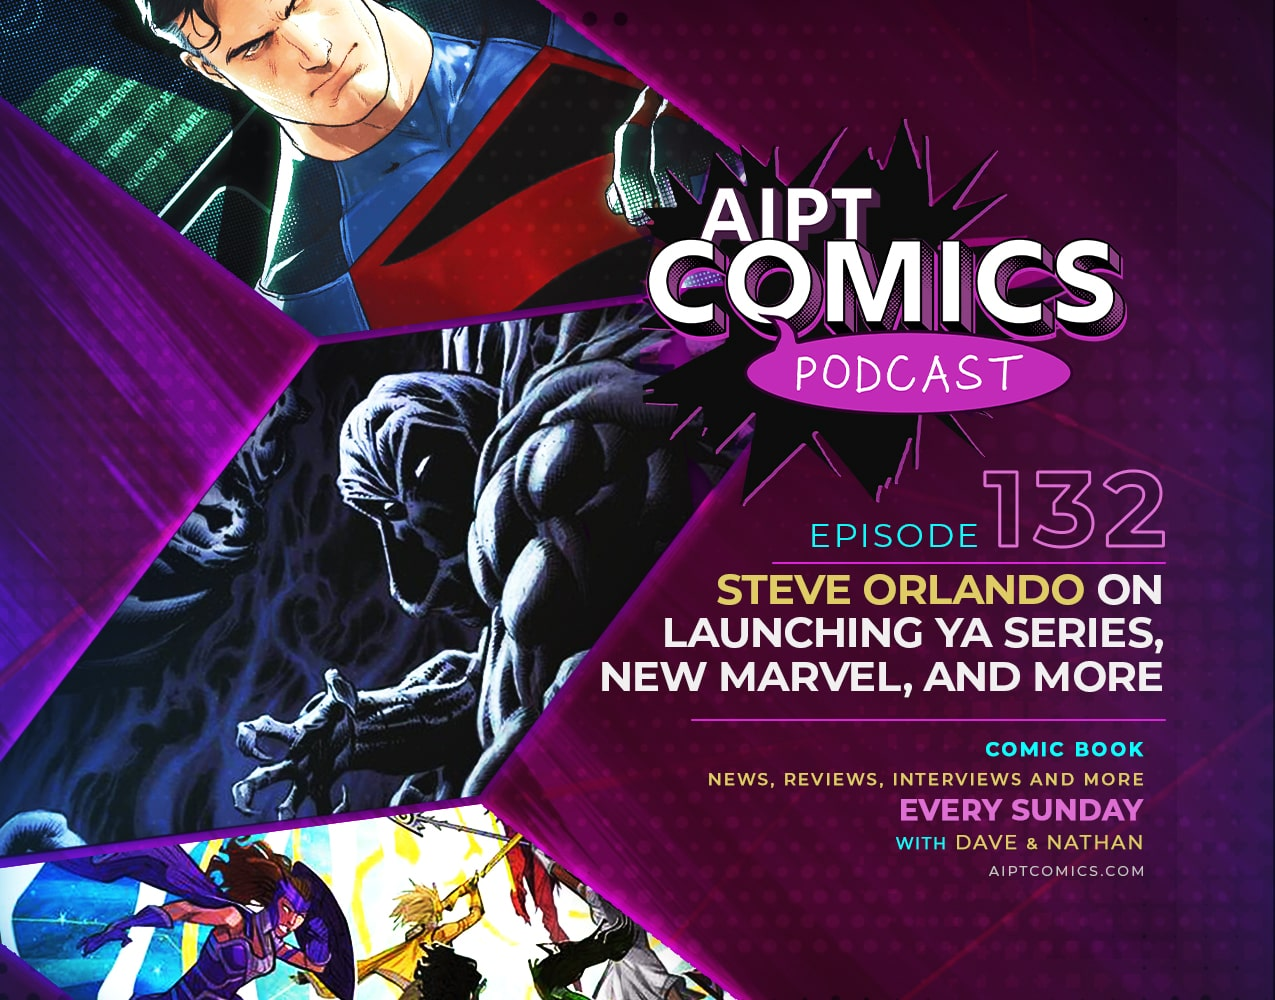 AIPT Comics podcast episode 132: Steve Orlando on launching YA series, new Marvel, and more